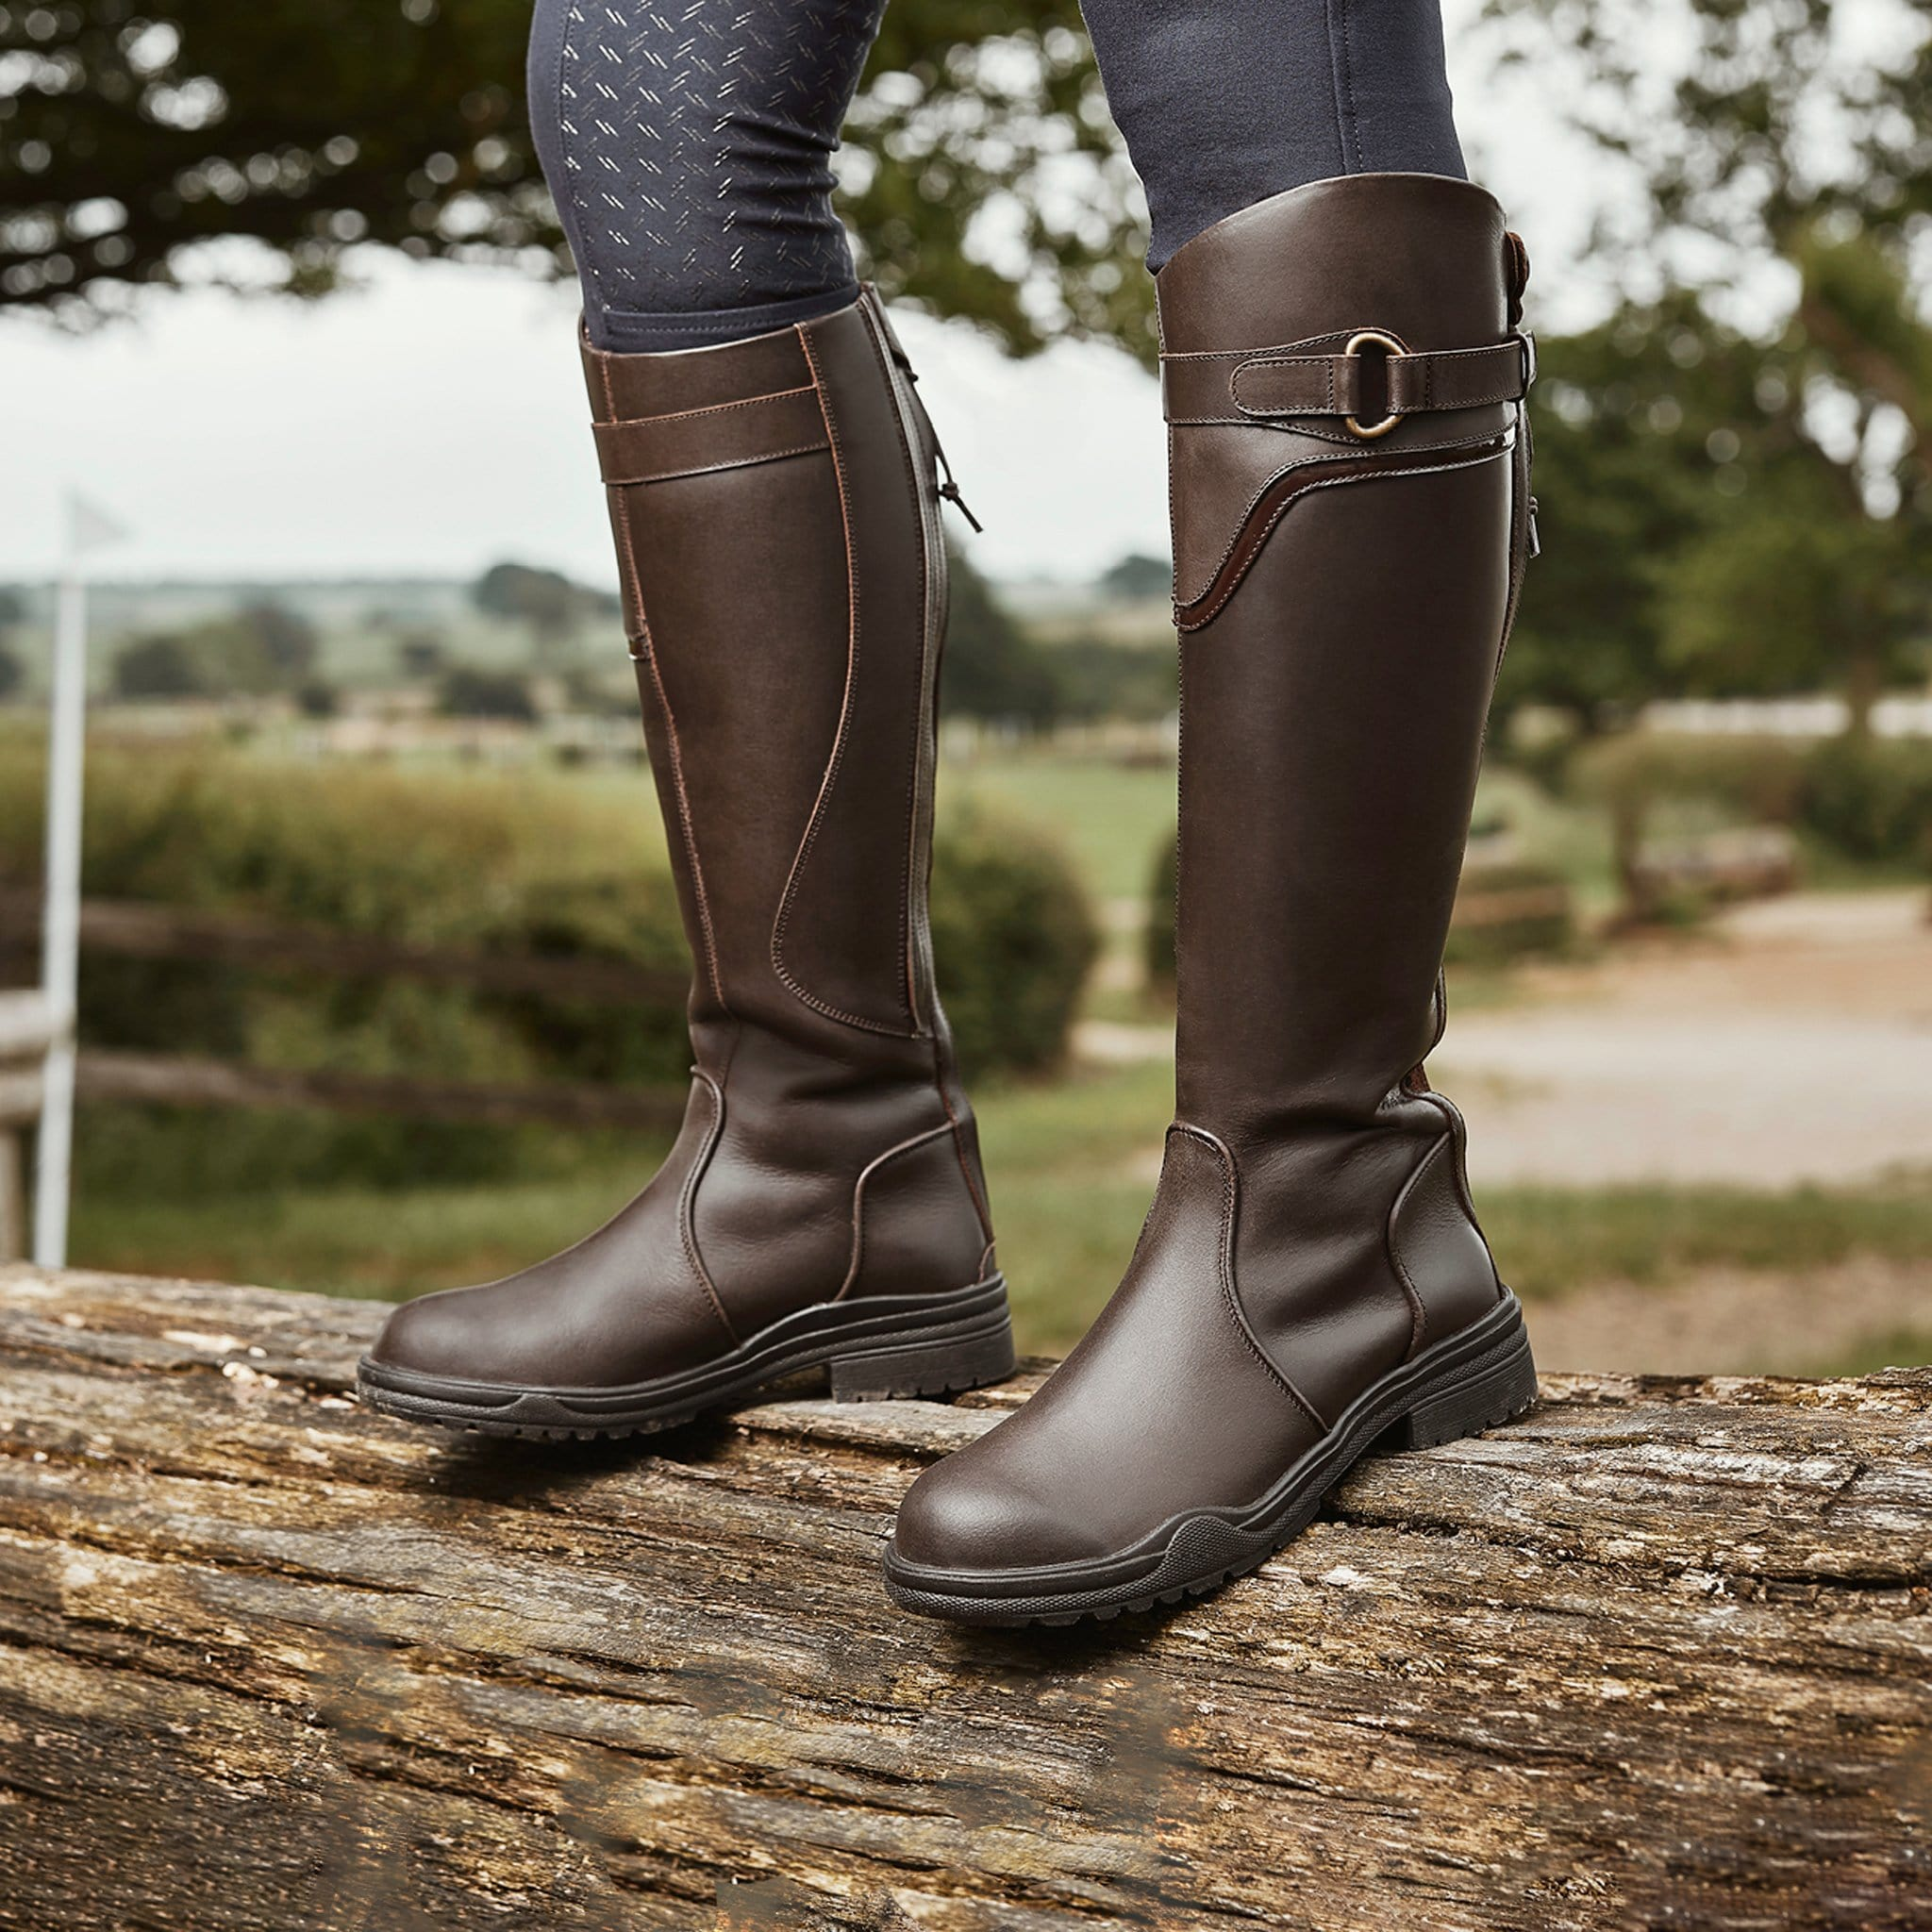 Dublin Calton Boots in Dark Brown 817735 Lifestyle Shot